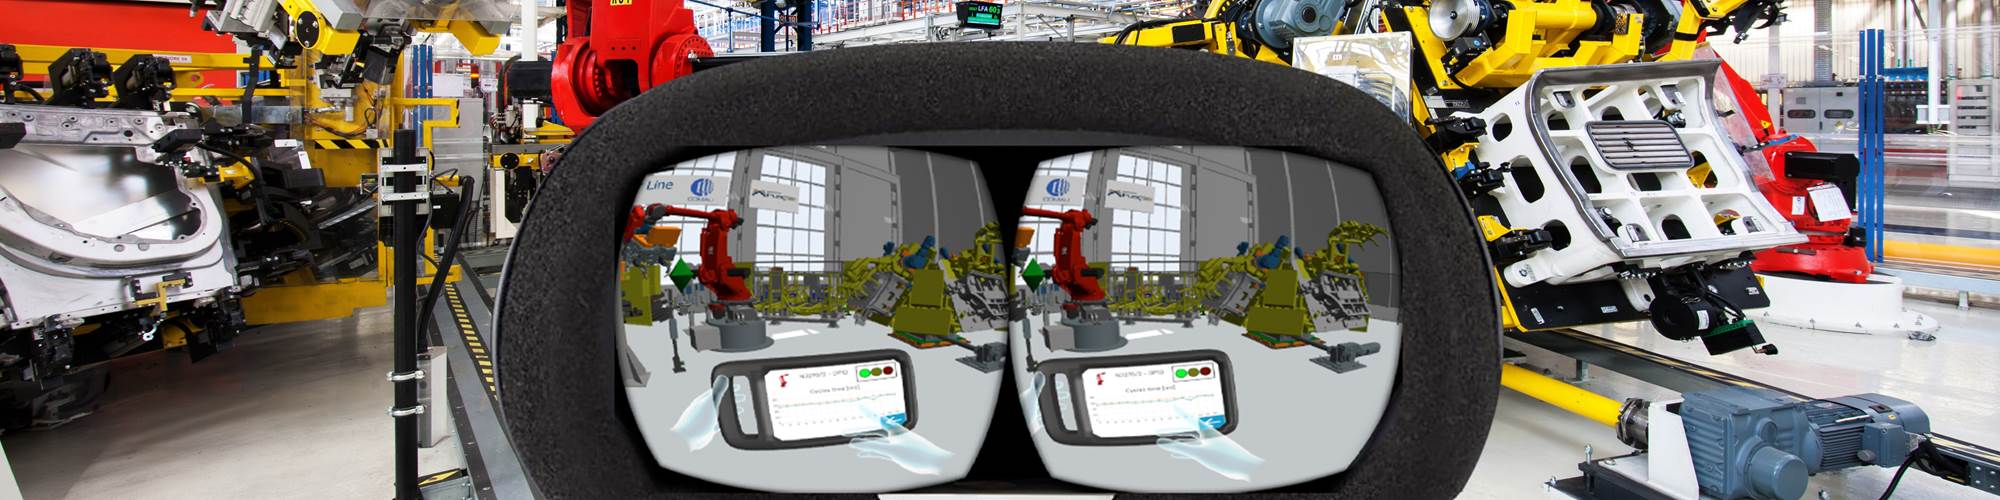 An illustration depicts augmented reality through AR goggles looking at manufacturing assembly robots.